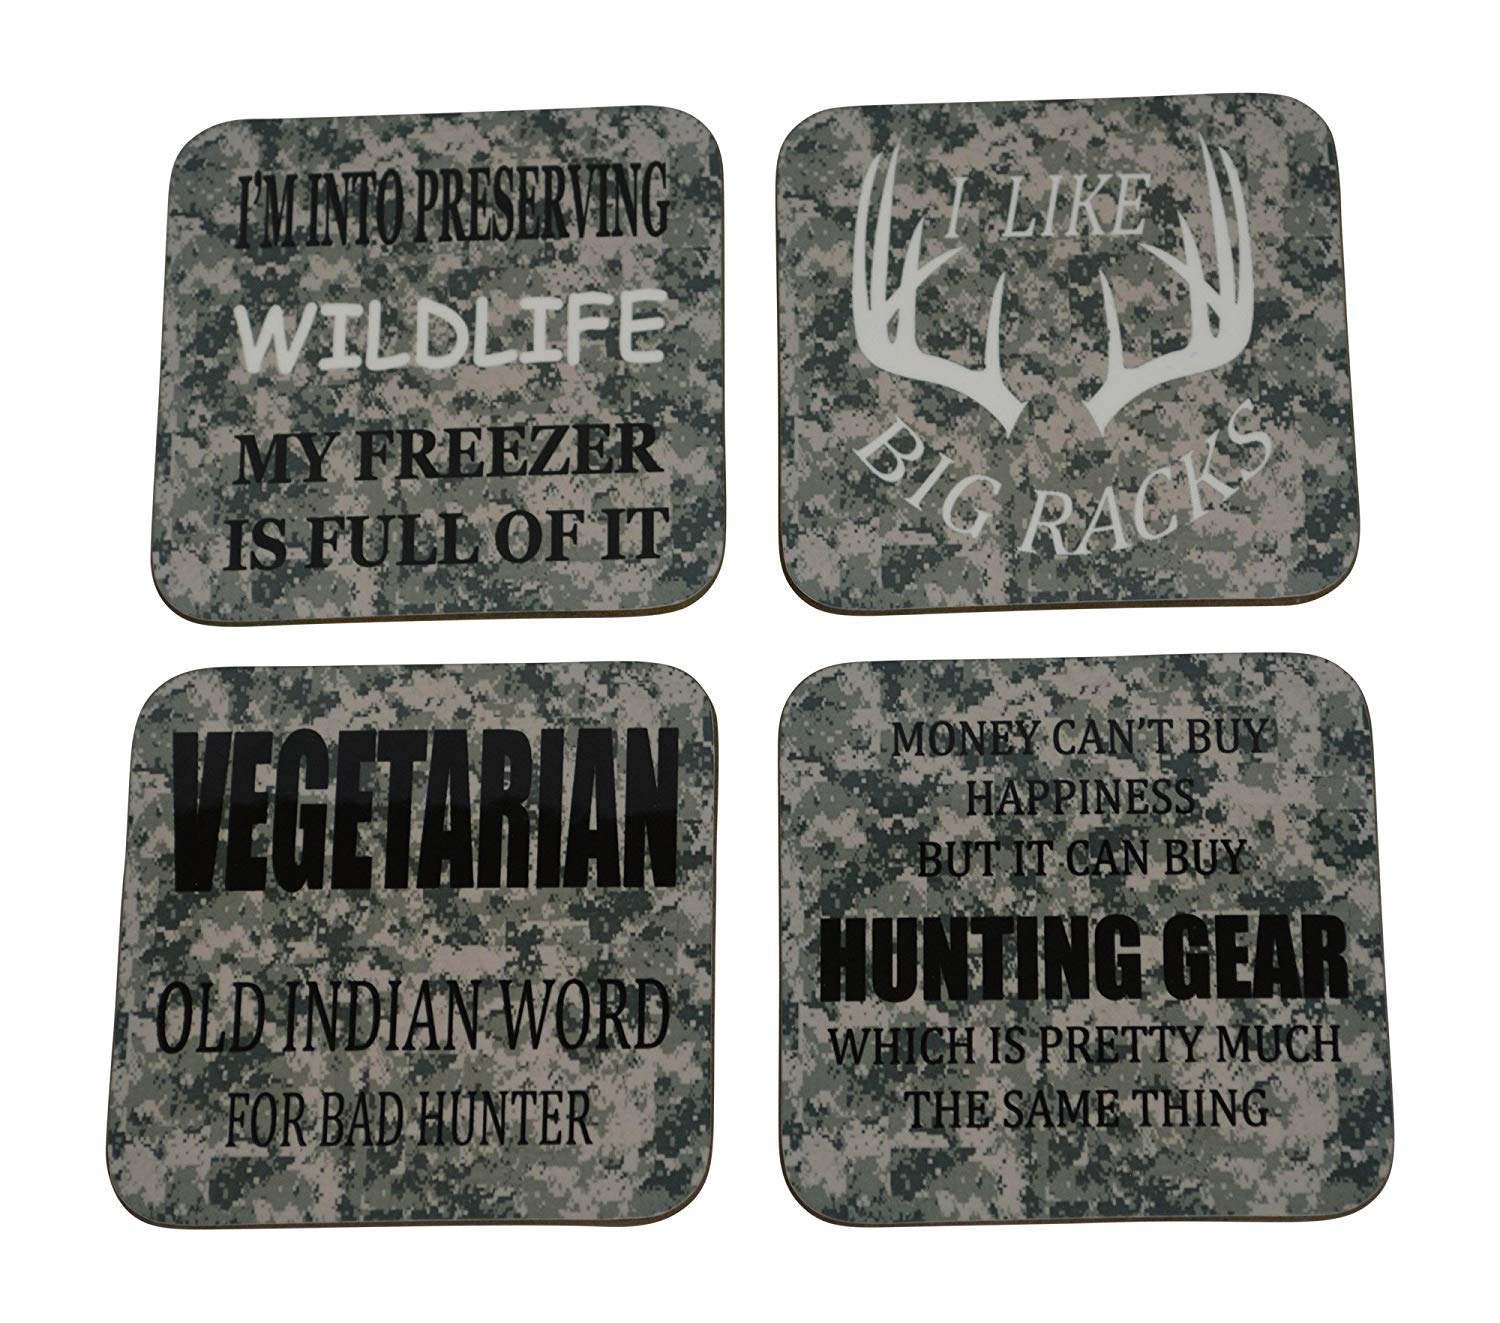 Hunting Drink Coaster Set Hunting Gift Beer Drinking Joke Funny Home Kitchen Barware Camo